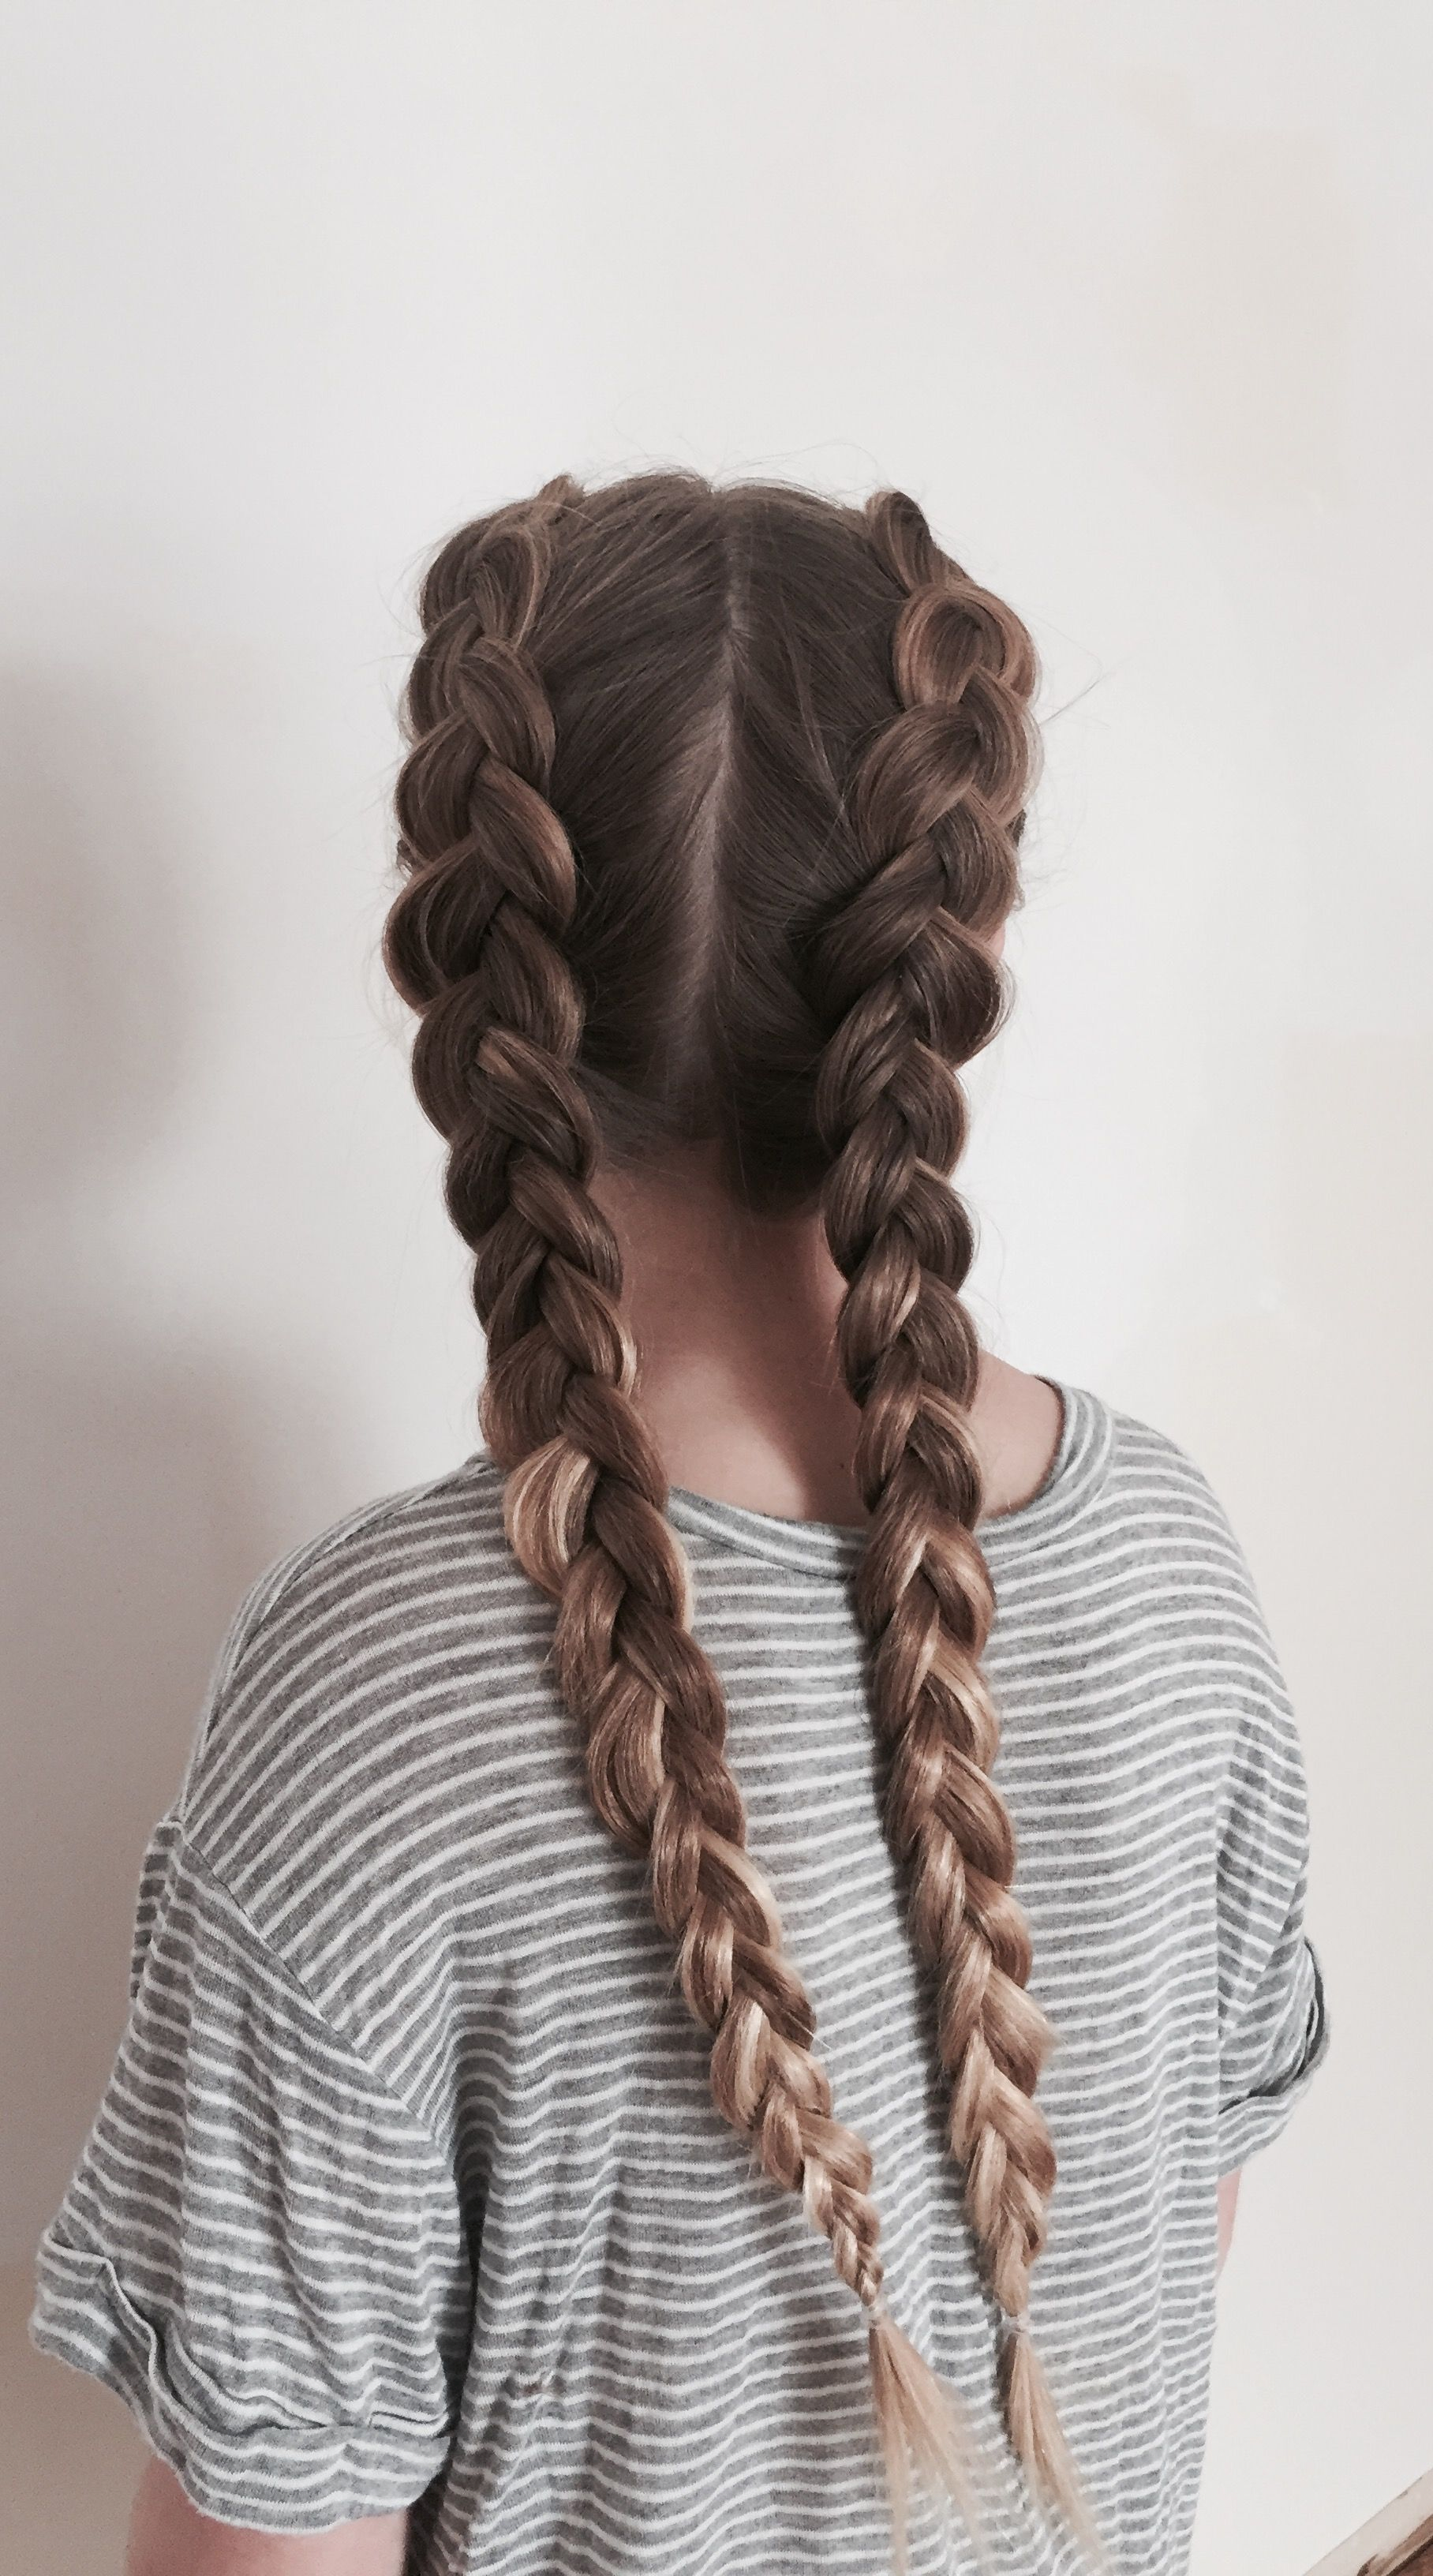 Dutch Braided Headband: Hair Styles, Braided Hairstyles